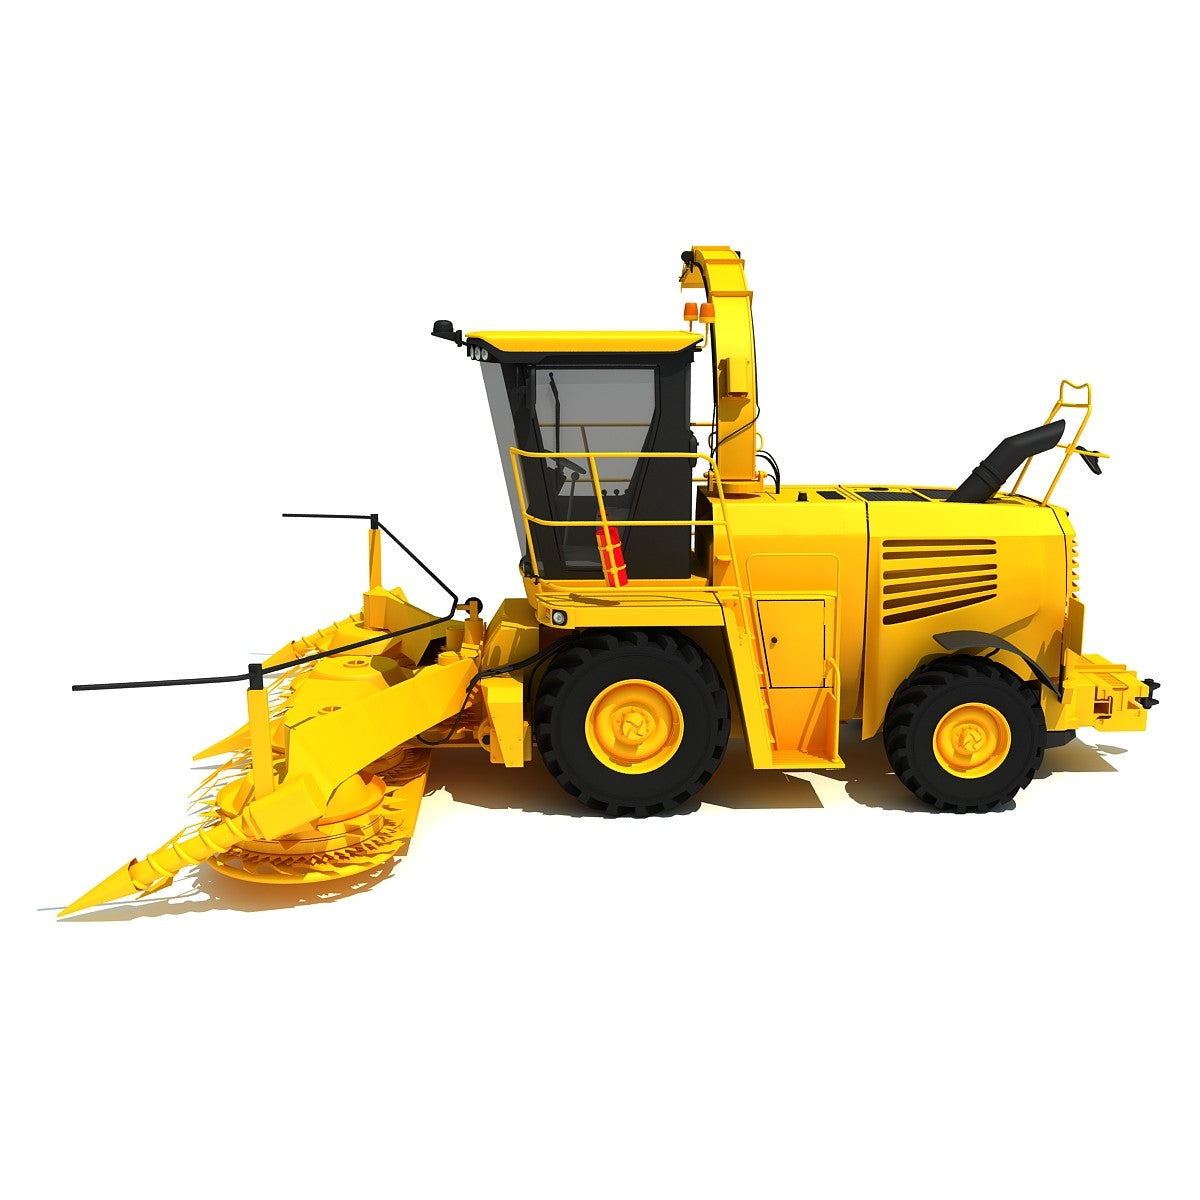 Forage Harvester 3D Model